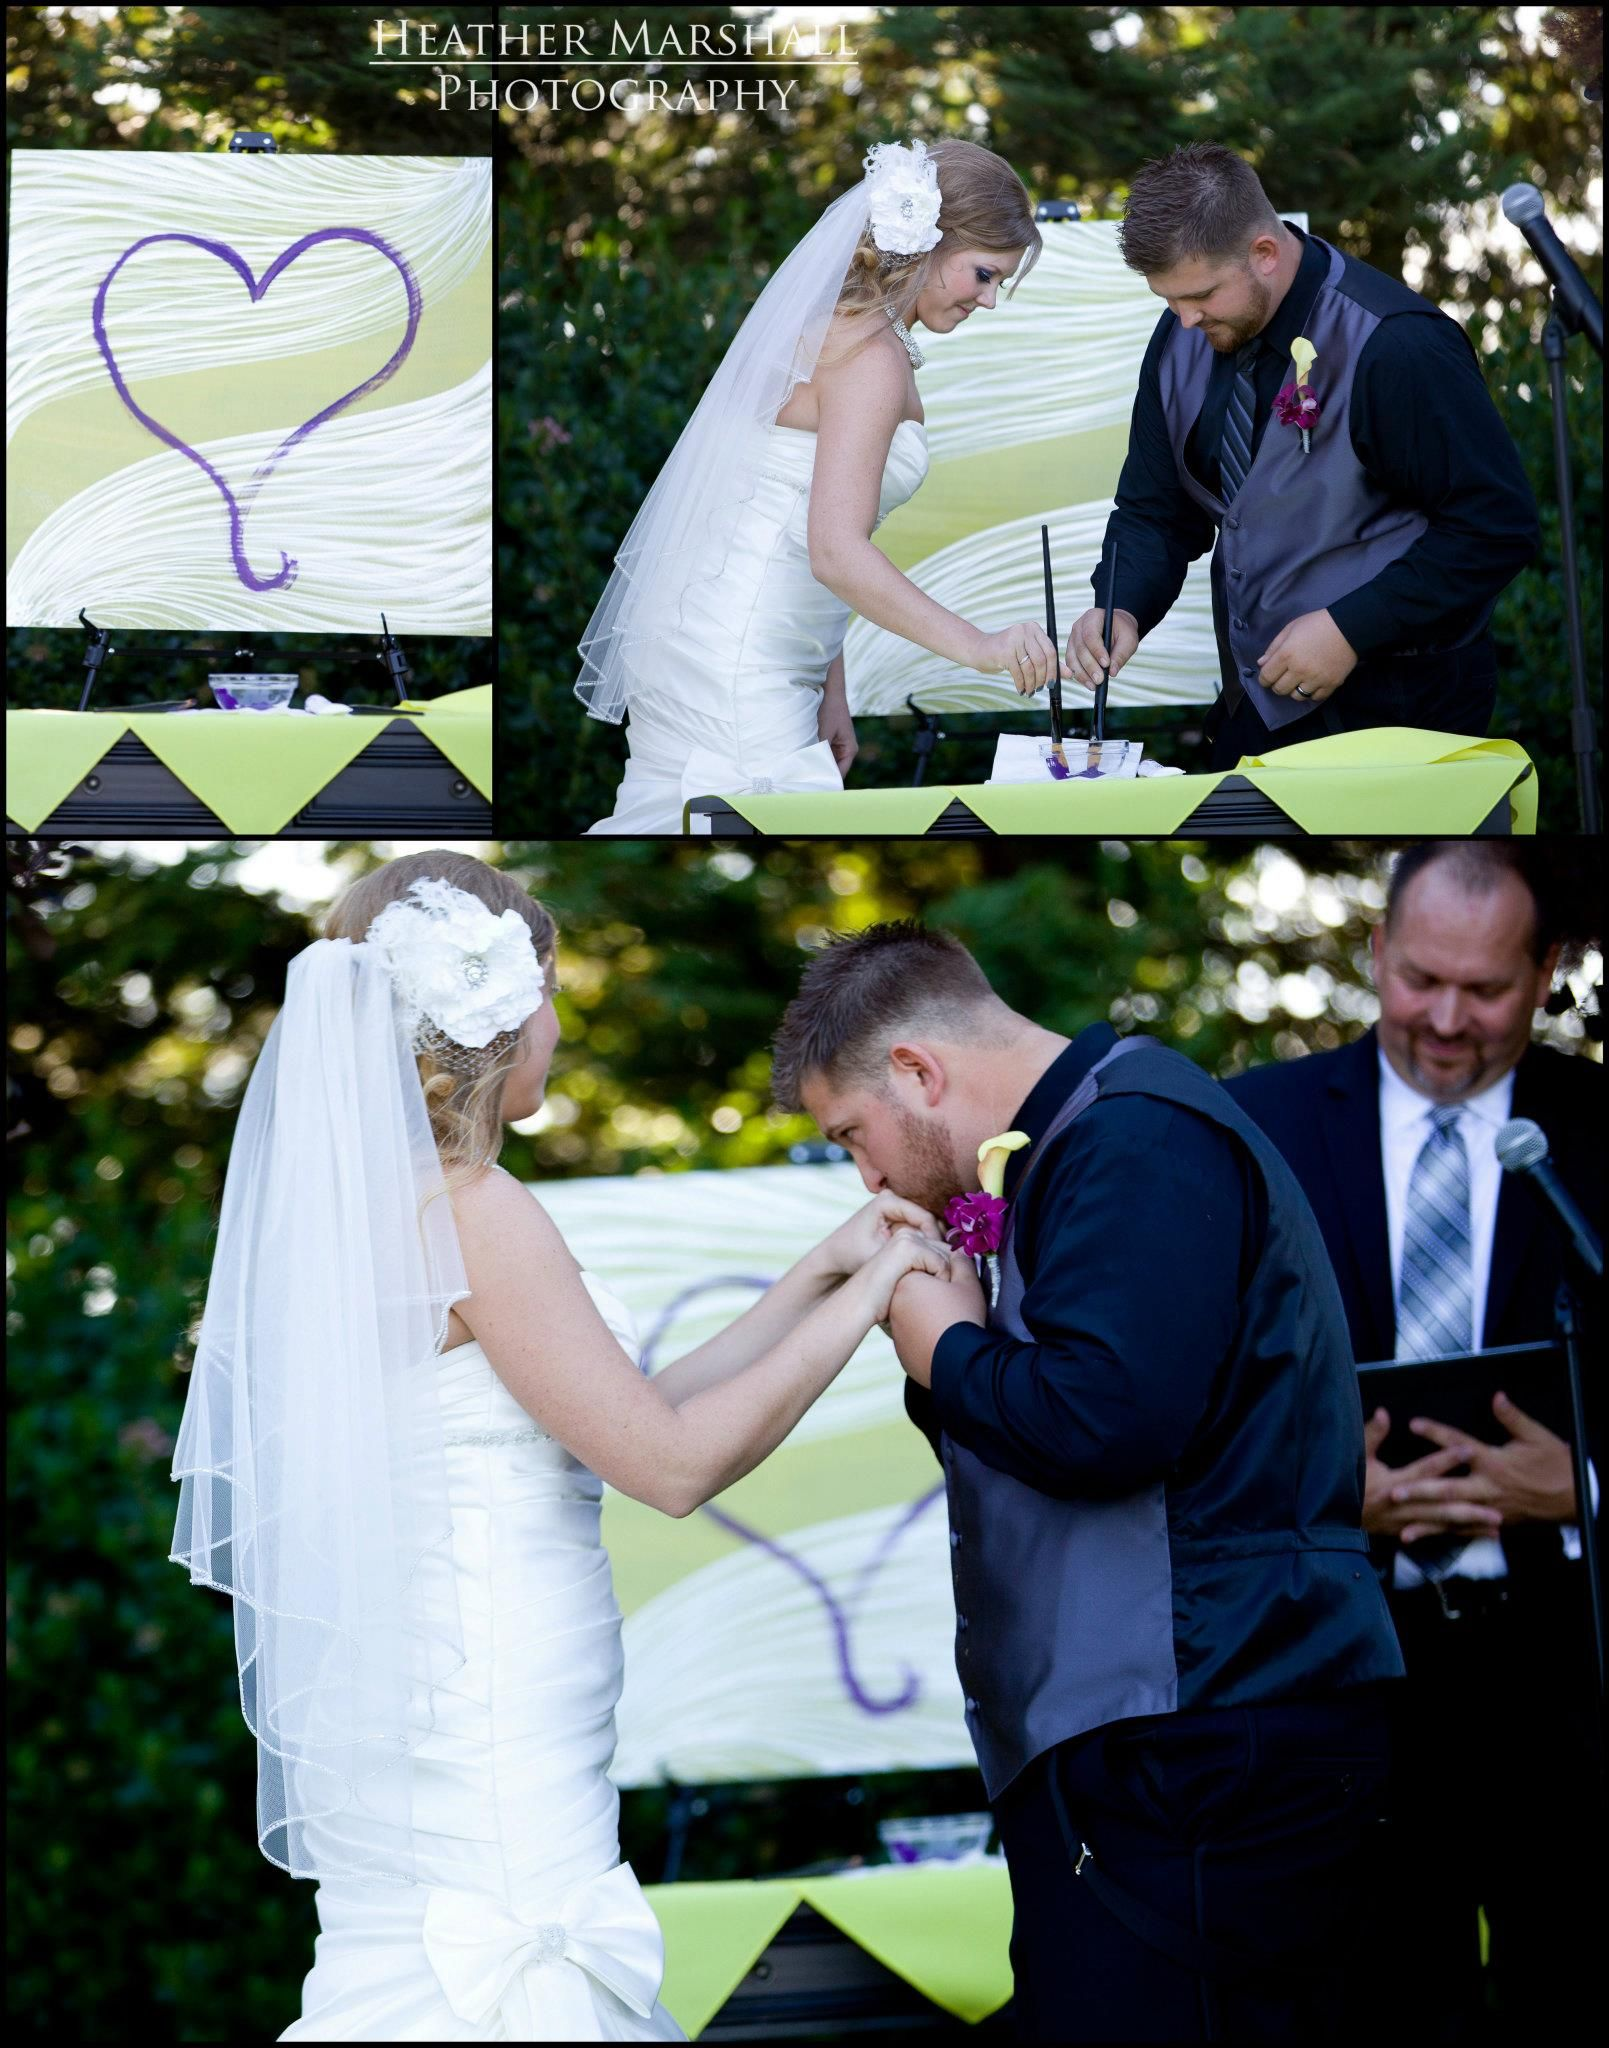 non traditional unity ceremony ideas wedding unity ideas Painting Super